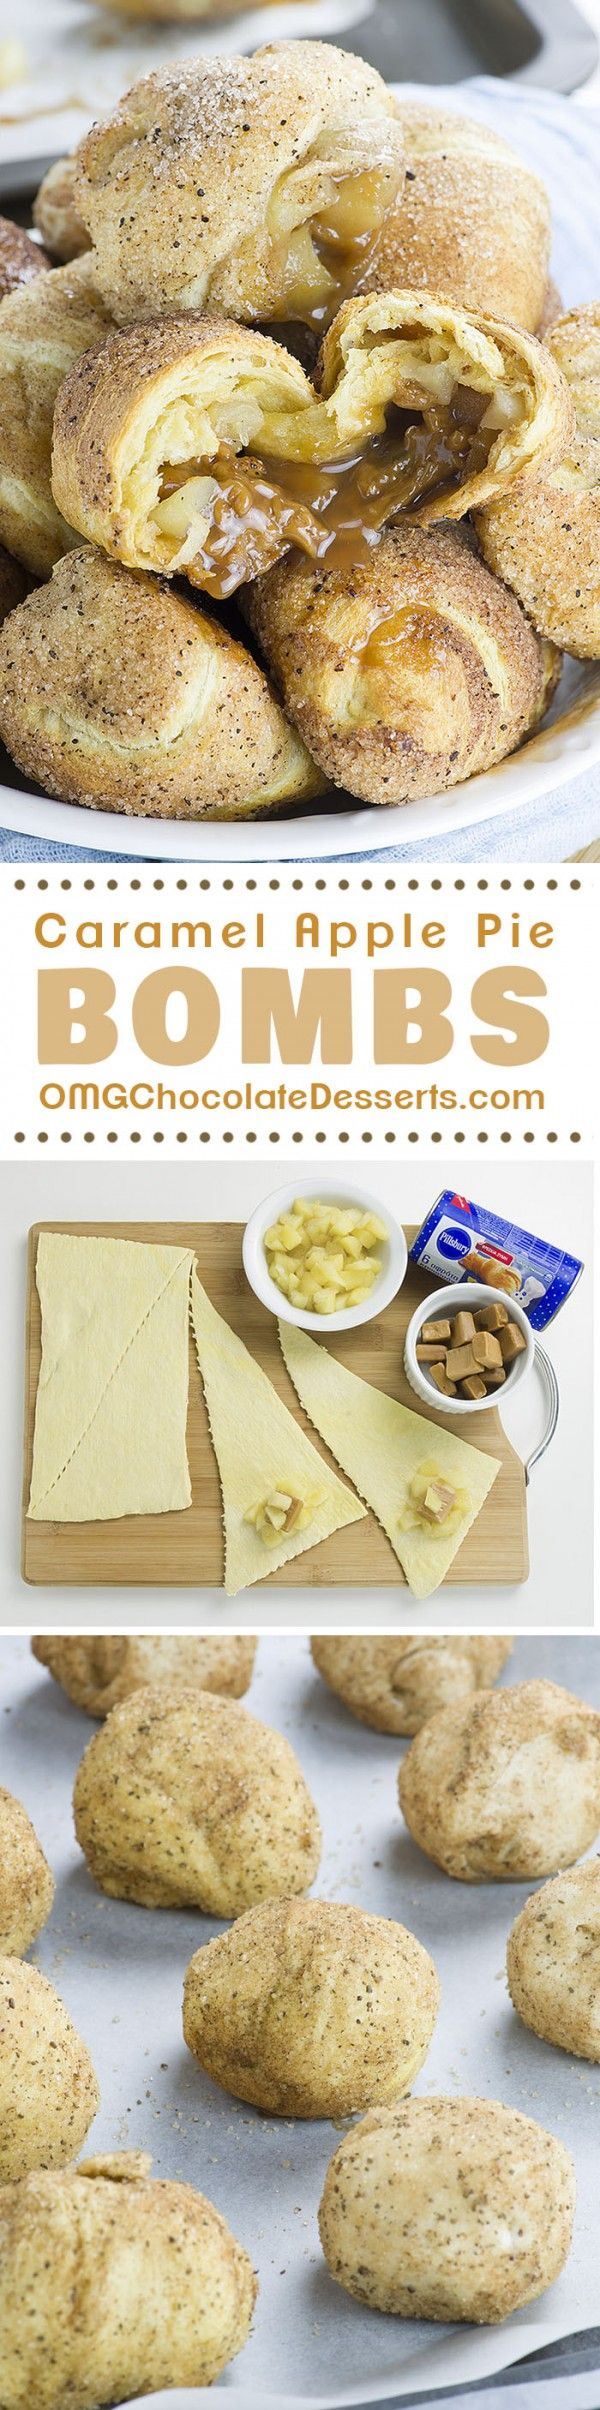 Get the recipe ♥ Caramel Apple Pie Bombs #besttoeat @recipes_to_go